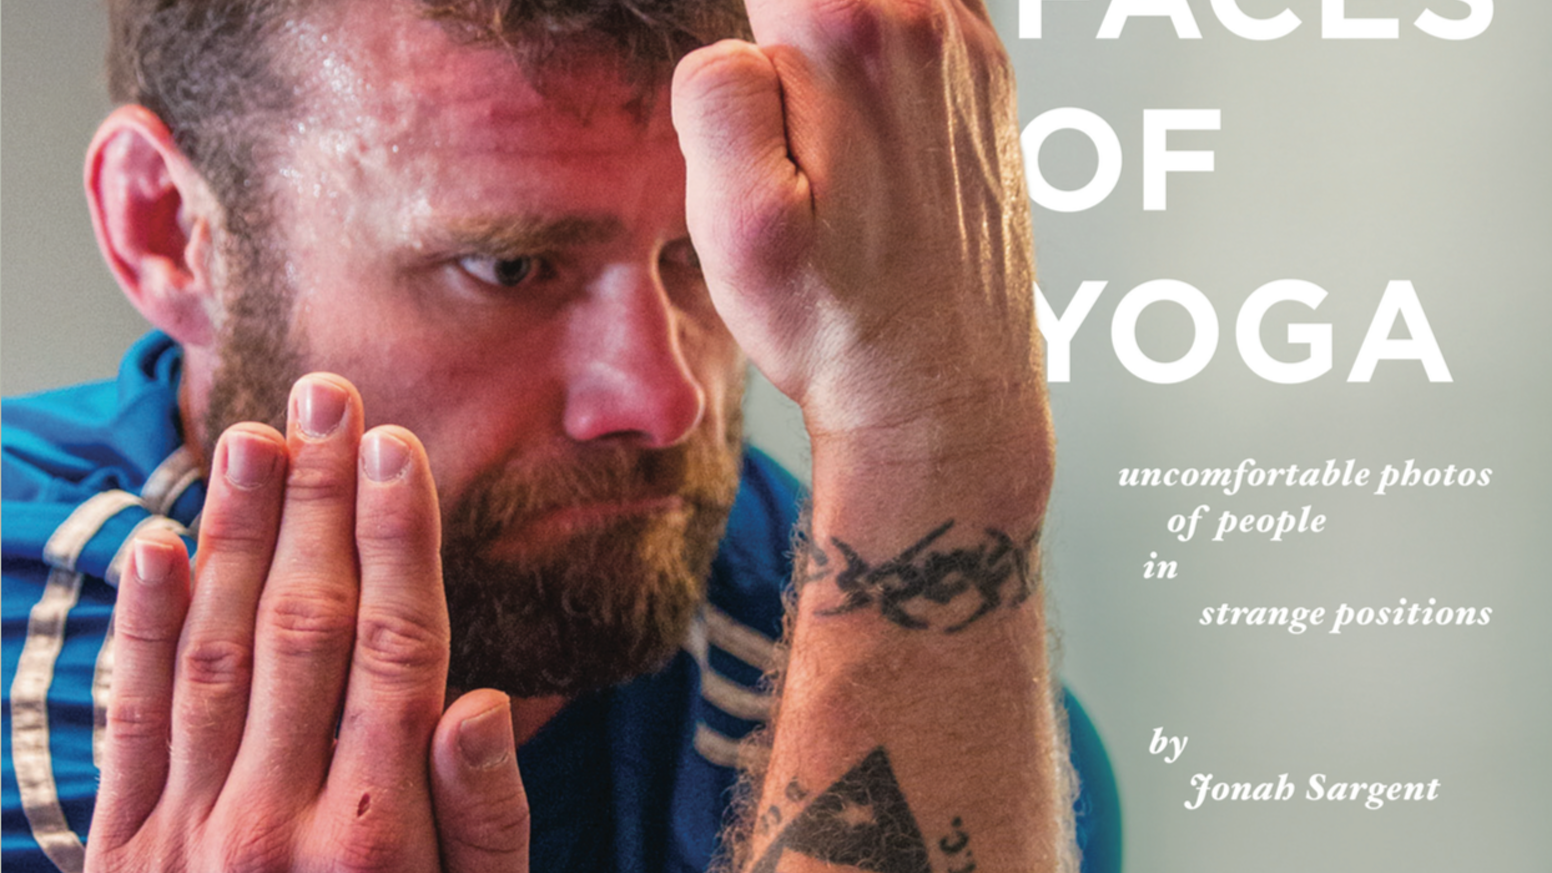 Get your copy of Faces of Yoga, the coffee table book filled with uncomfortable photos of people in strange positions. Follow the pre-order link below!